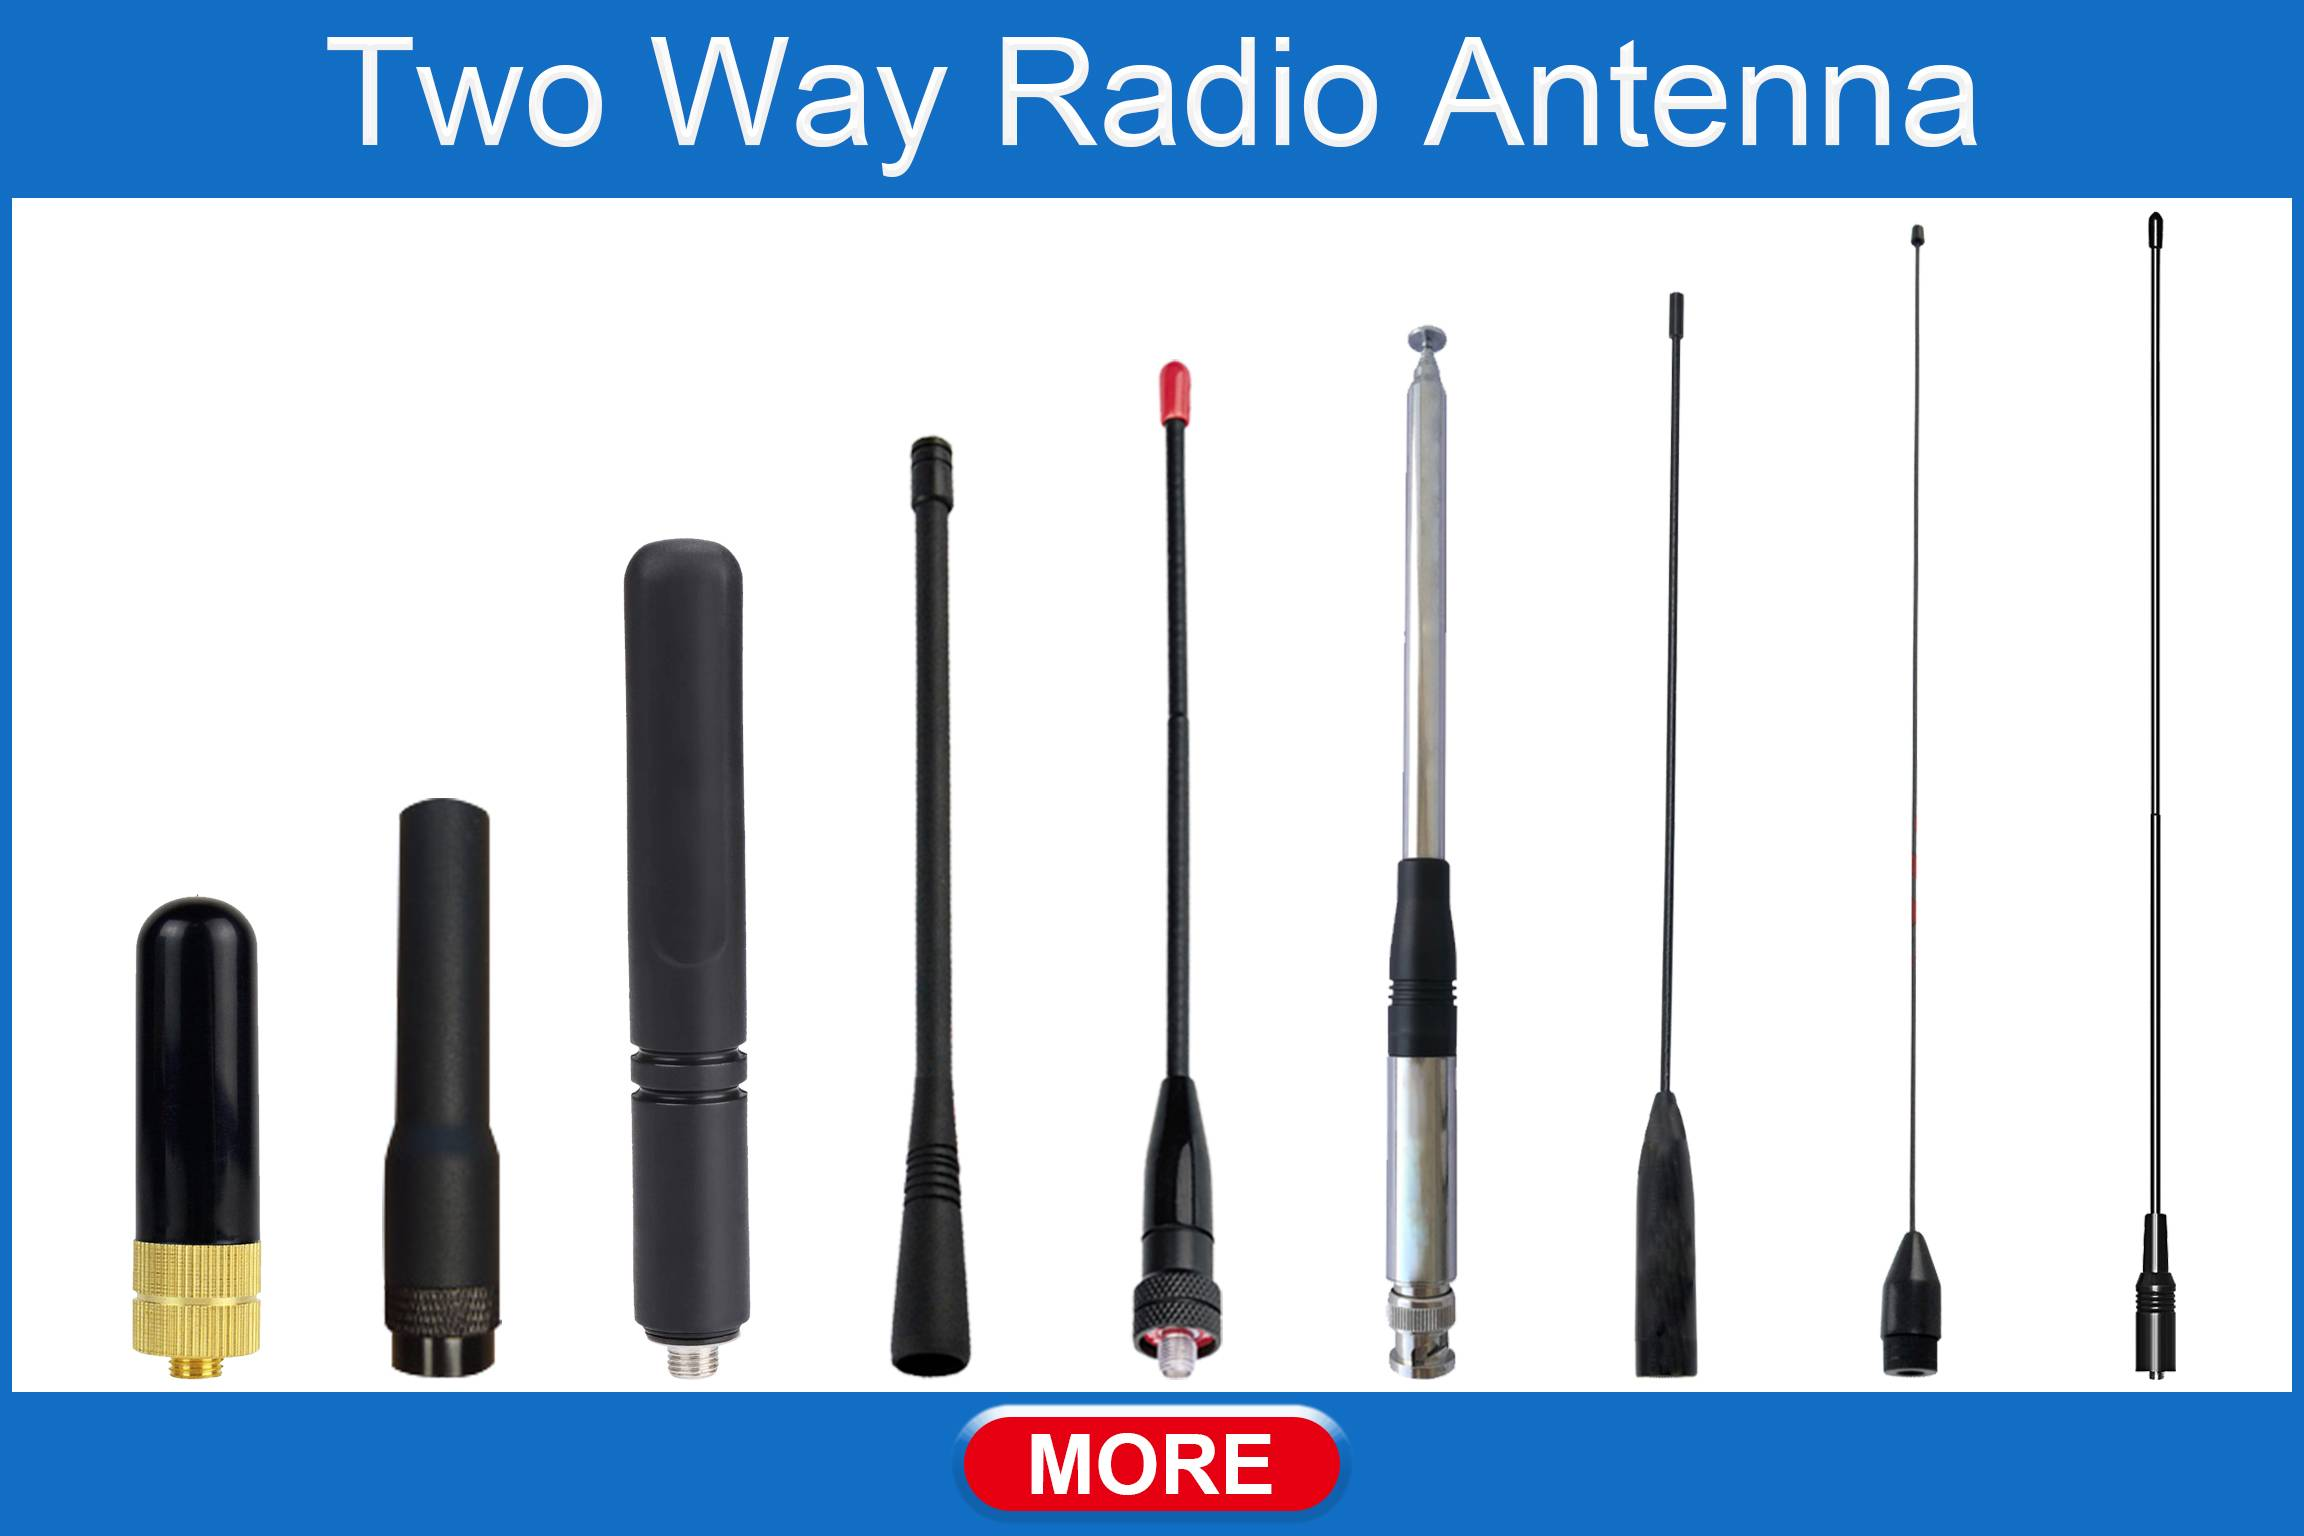 Twa Way Radio Antenna